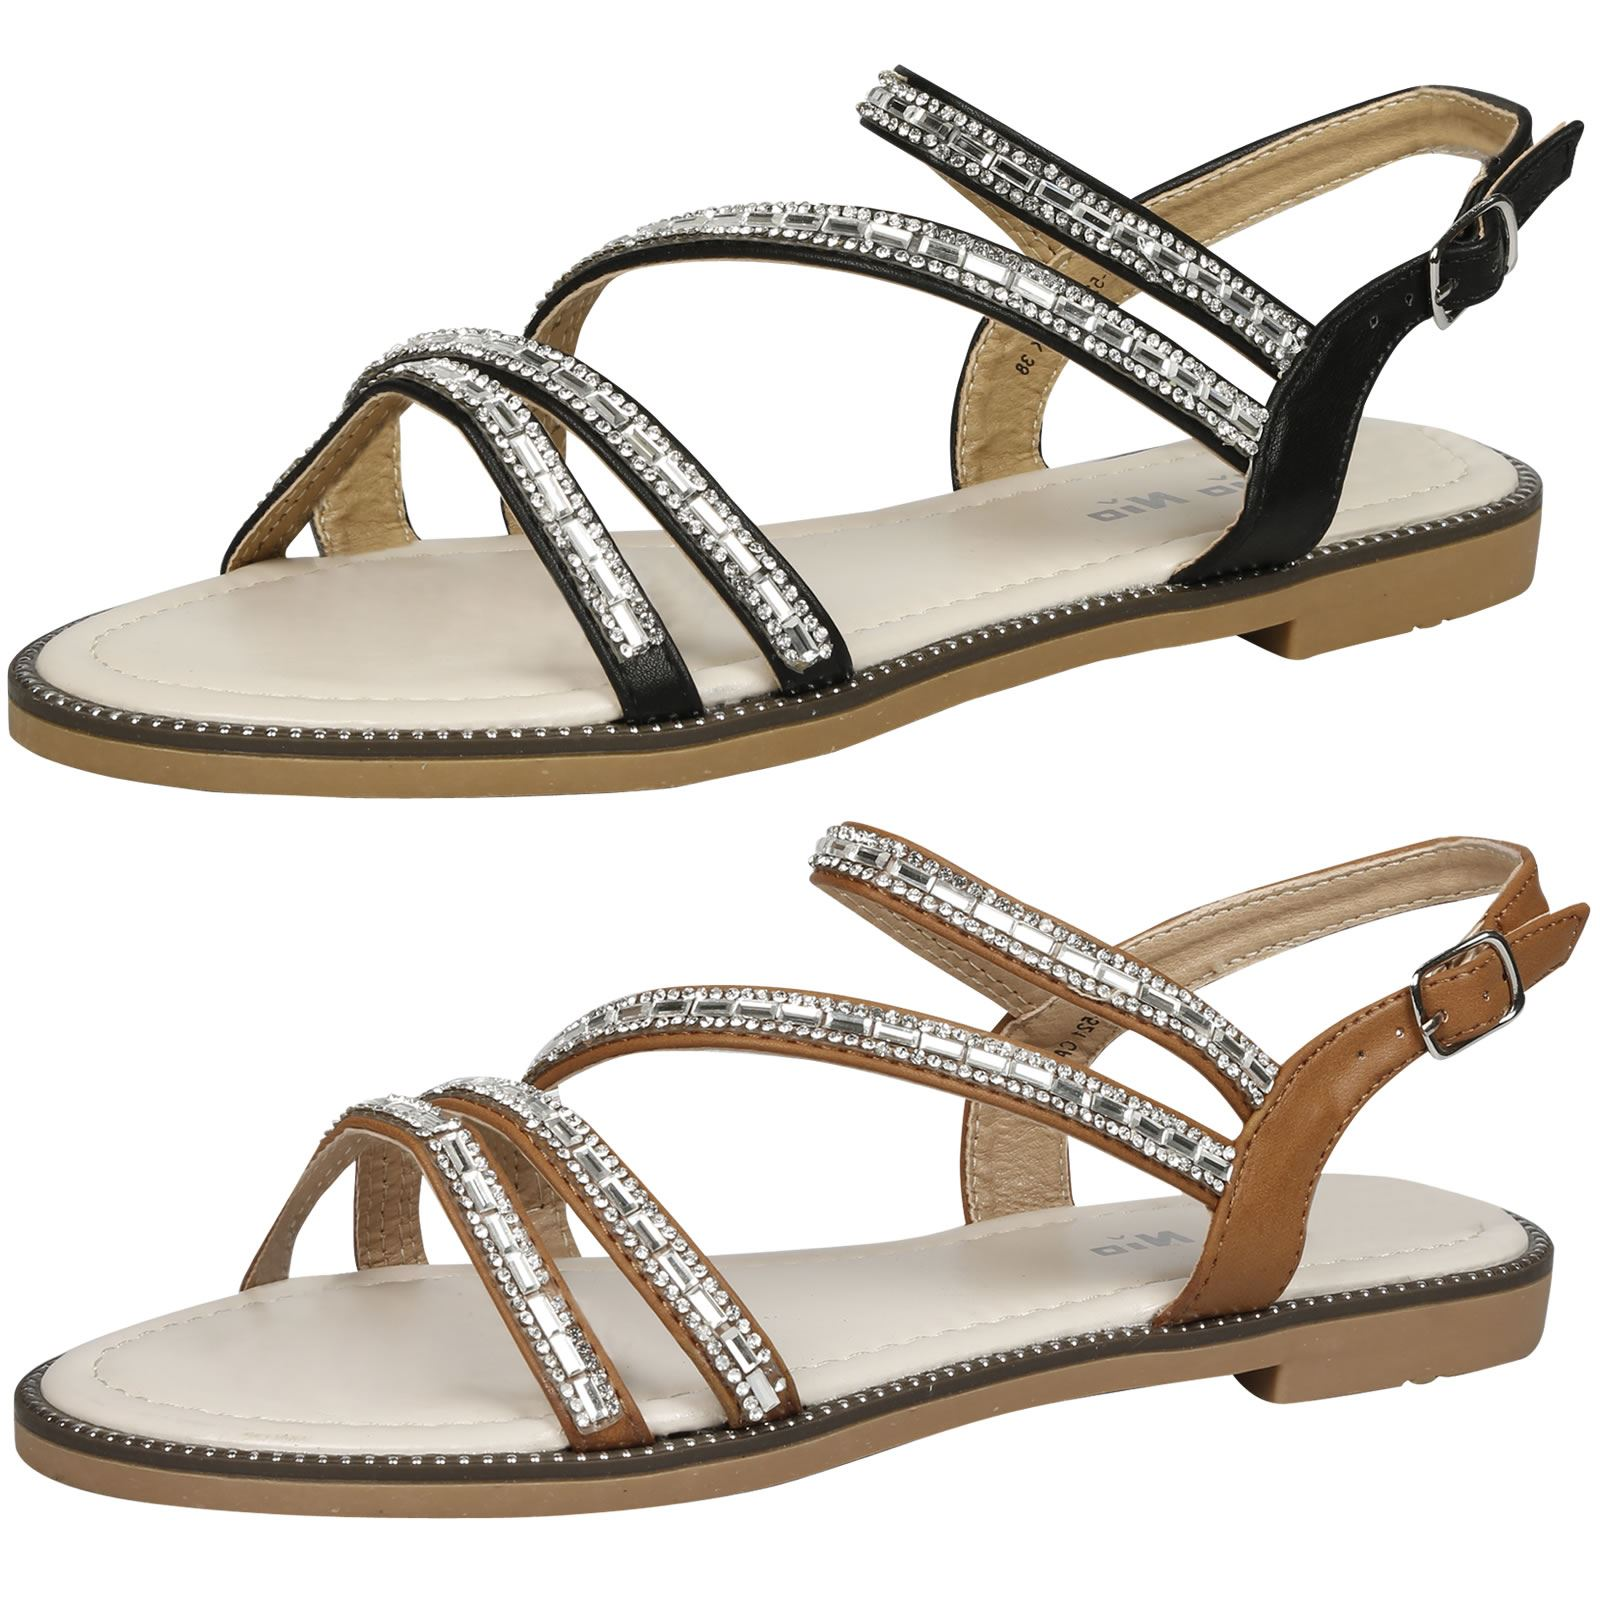 d7a325e8c9106 WOMENS SHOES LADIES SANDALS CRYSTAL DIAMANTE SUMMER DRESSY EVENING CASUAL  STYLE